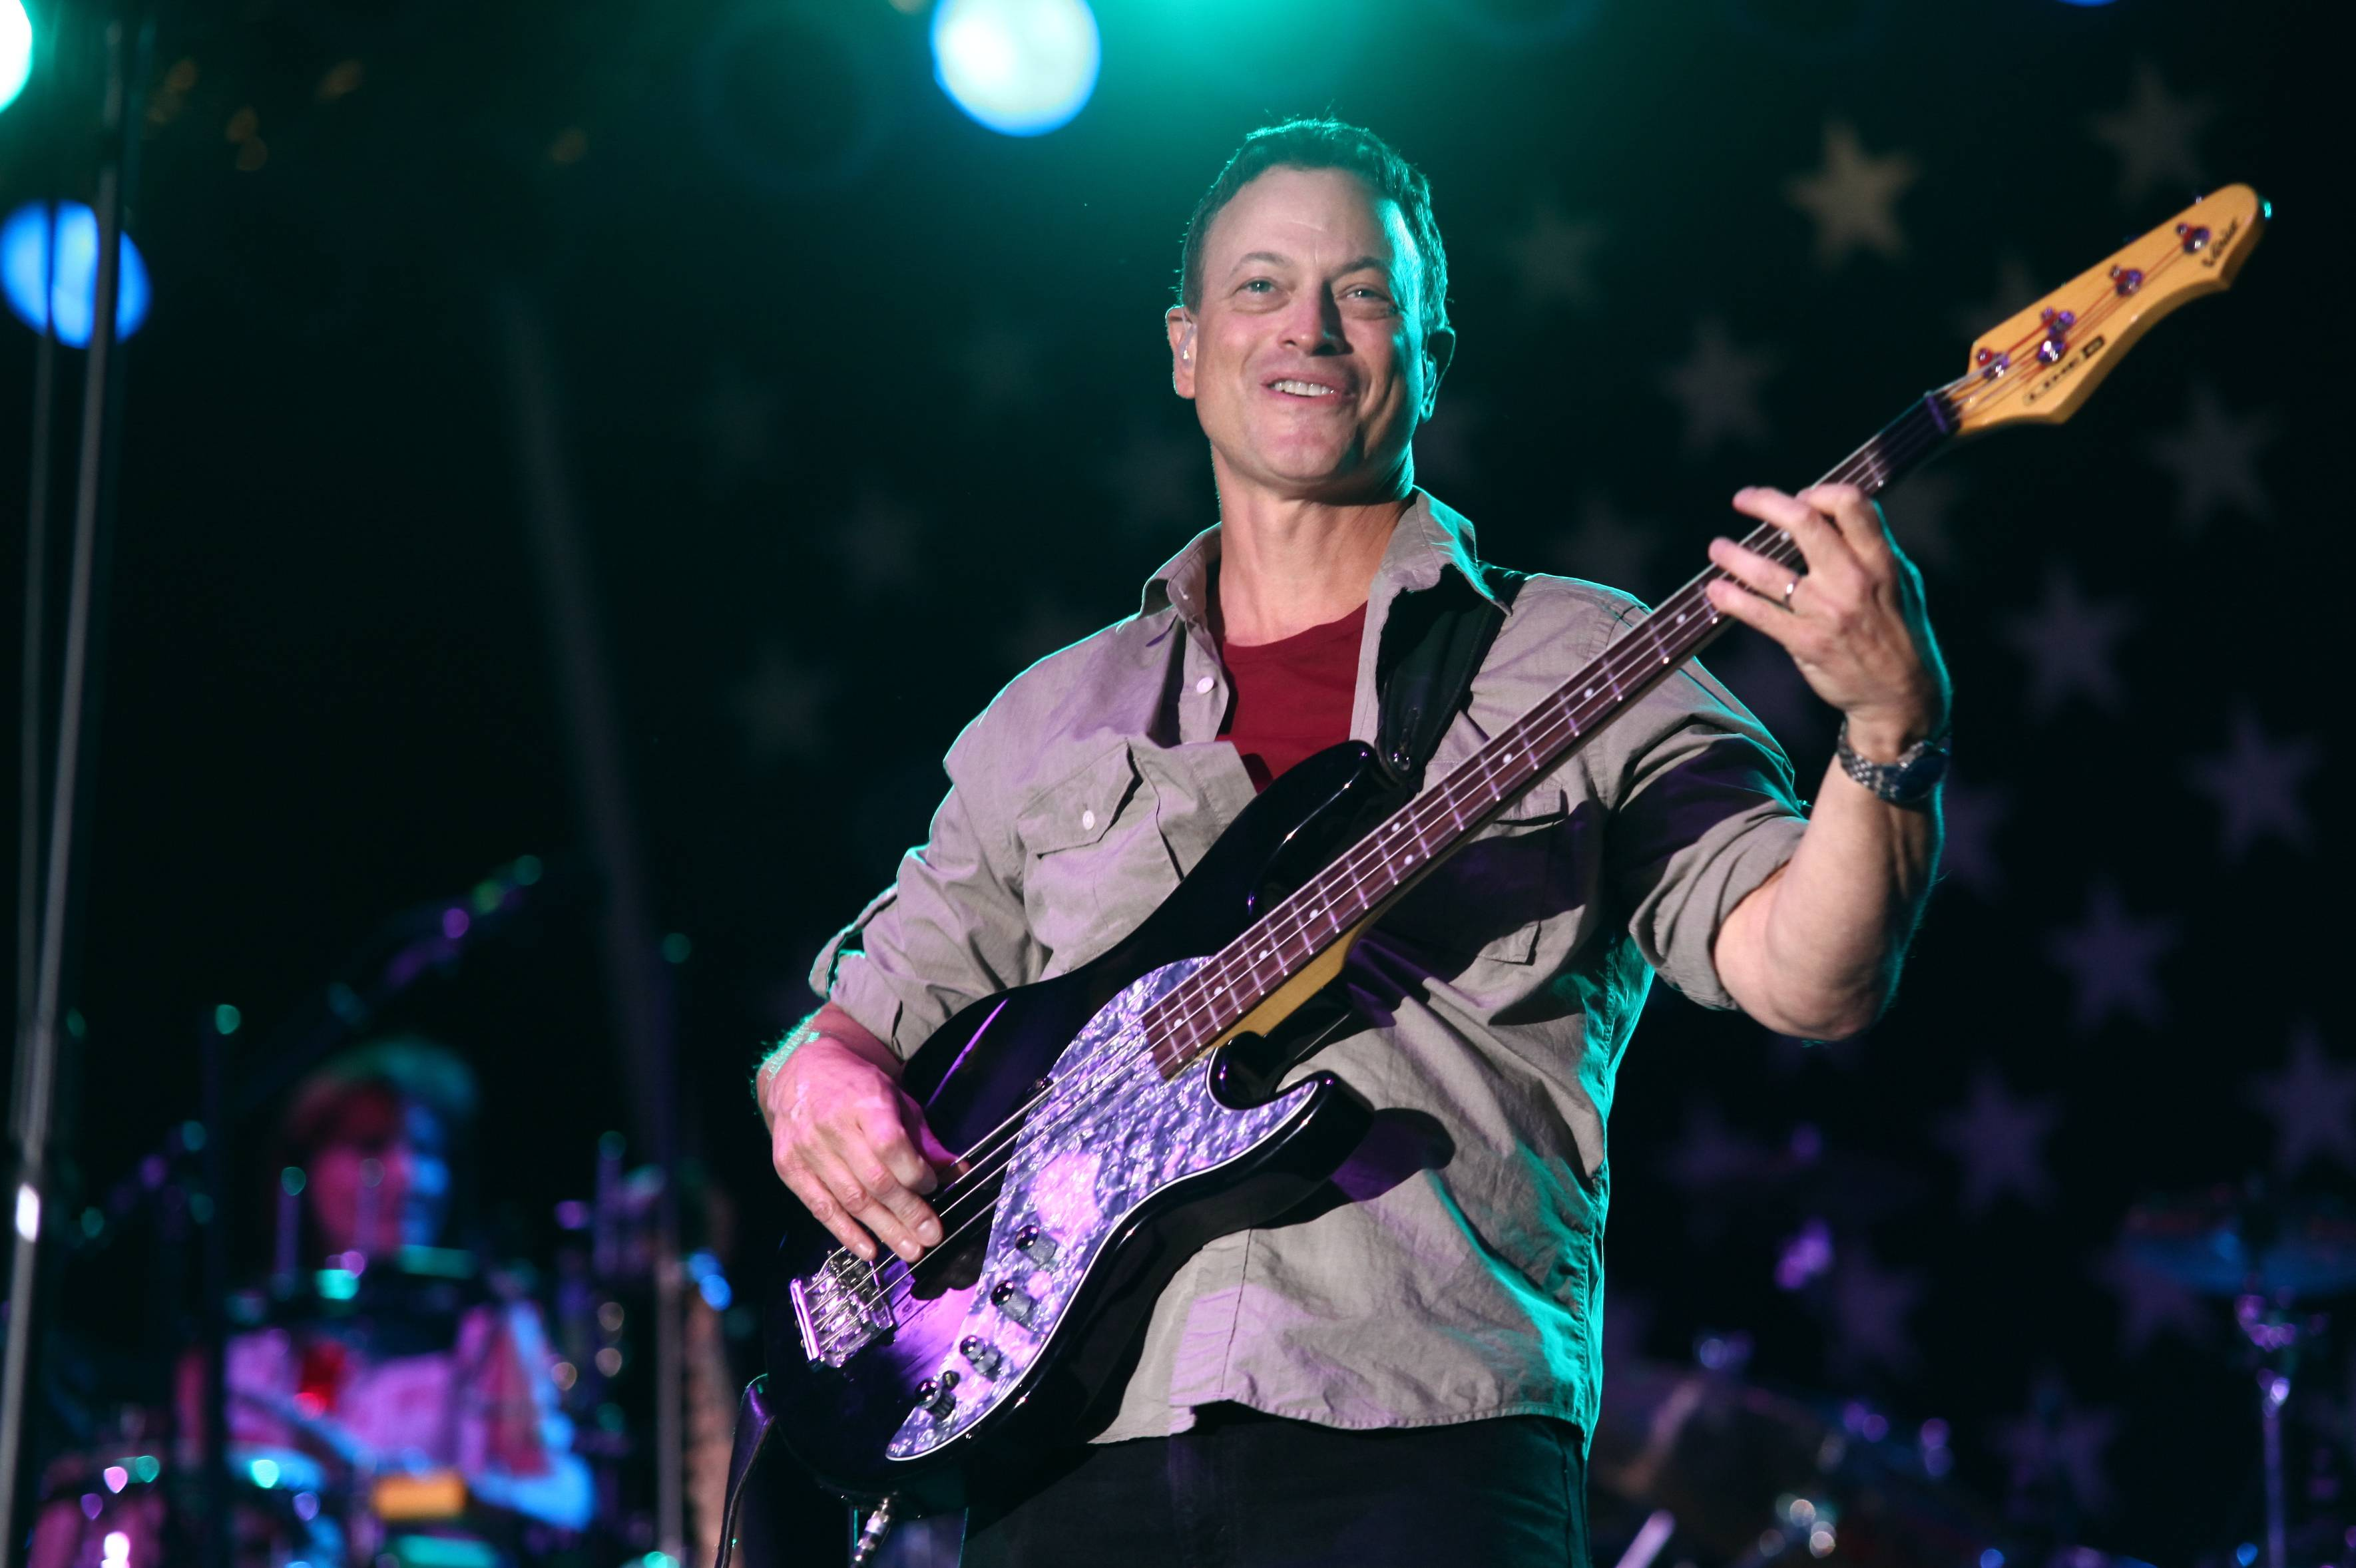 Gary Sinise, who went to school in Glen Ellyn, has traveled around the world to perform for troops serving overseas.